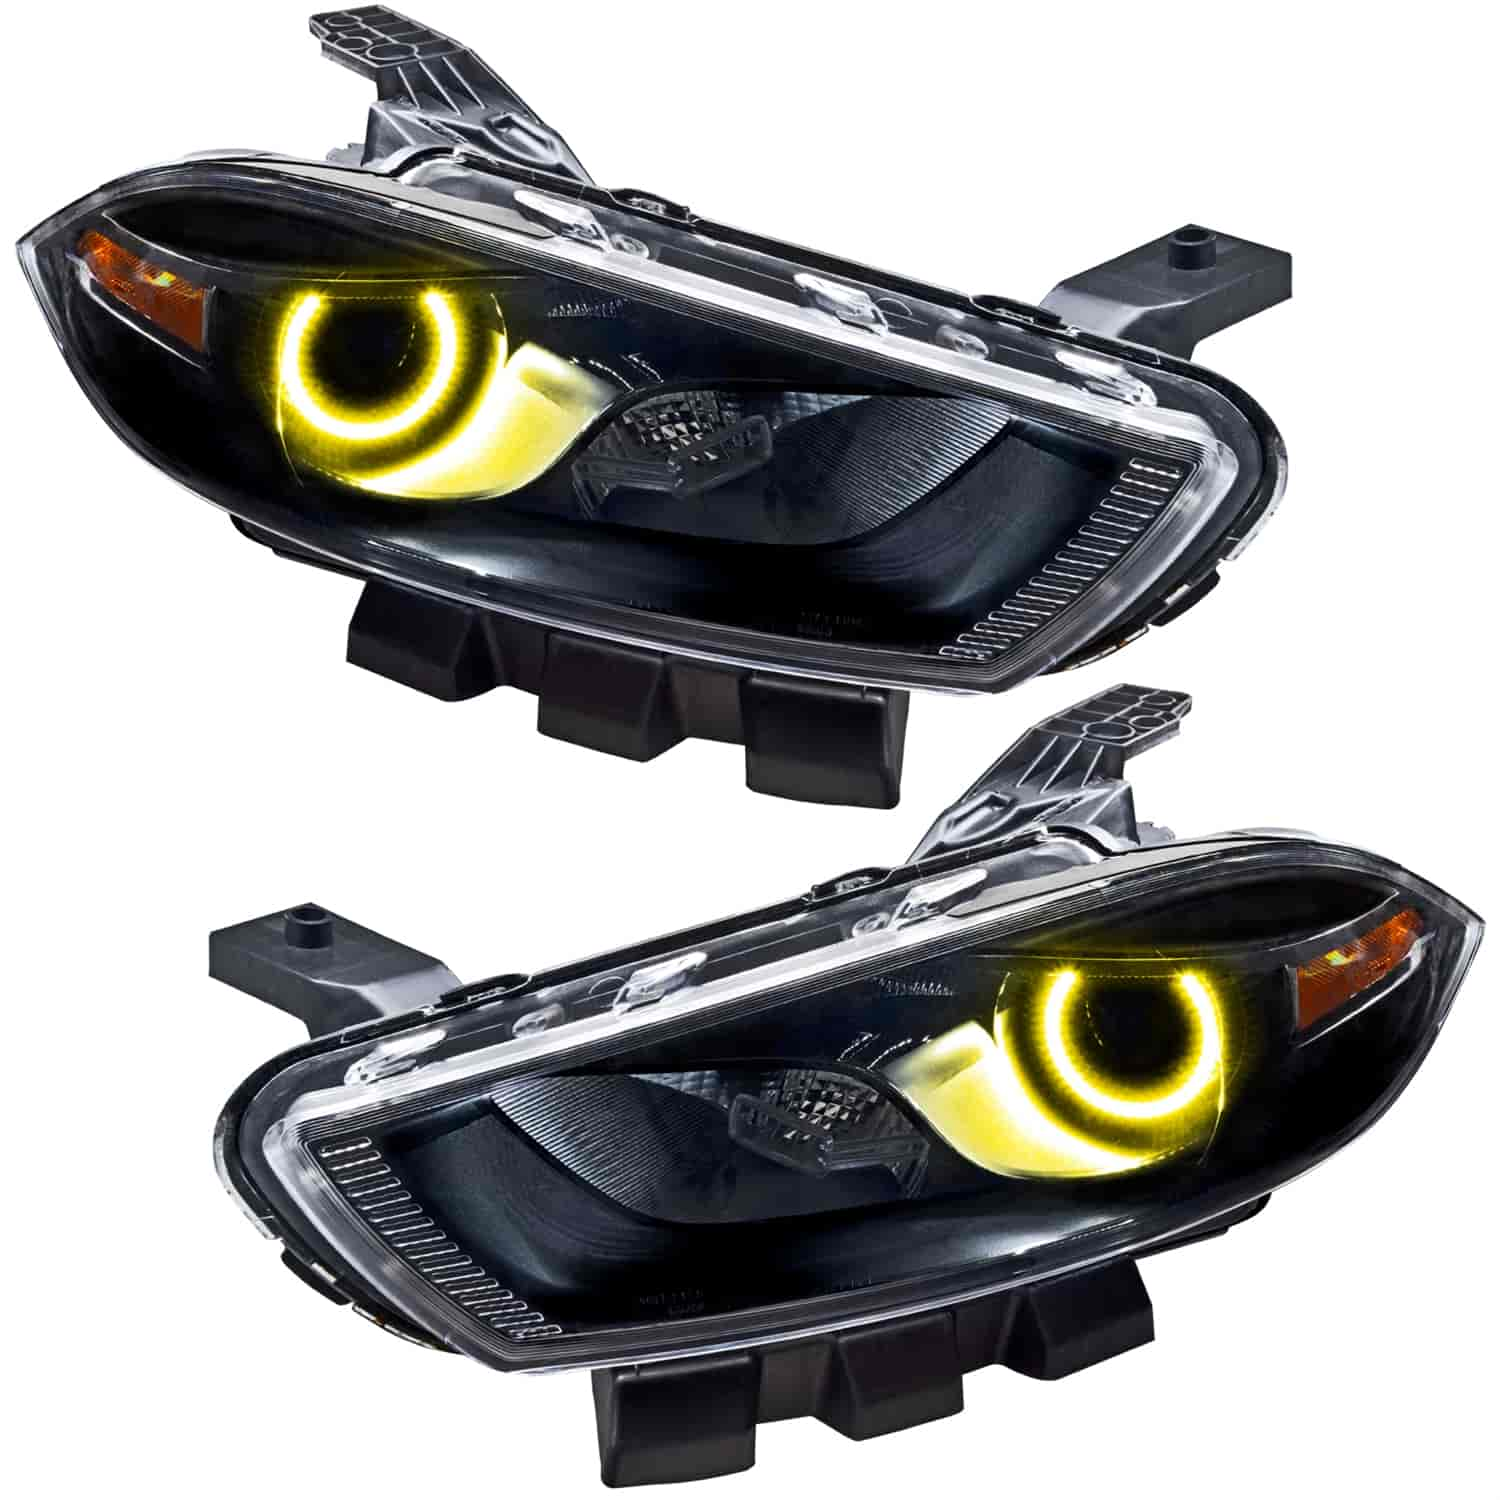 ORACLE Lighting 7142-006: 2013 2015 Dodge Dart HID Style